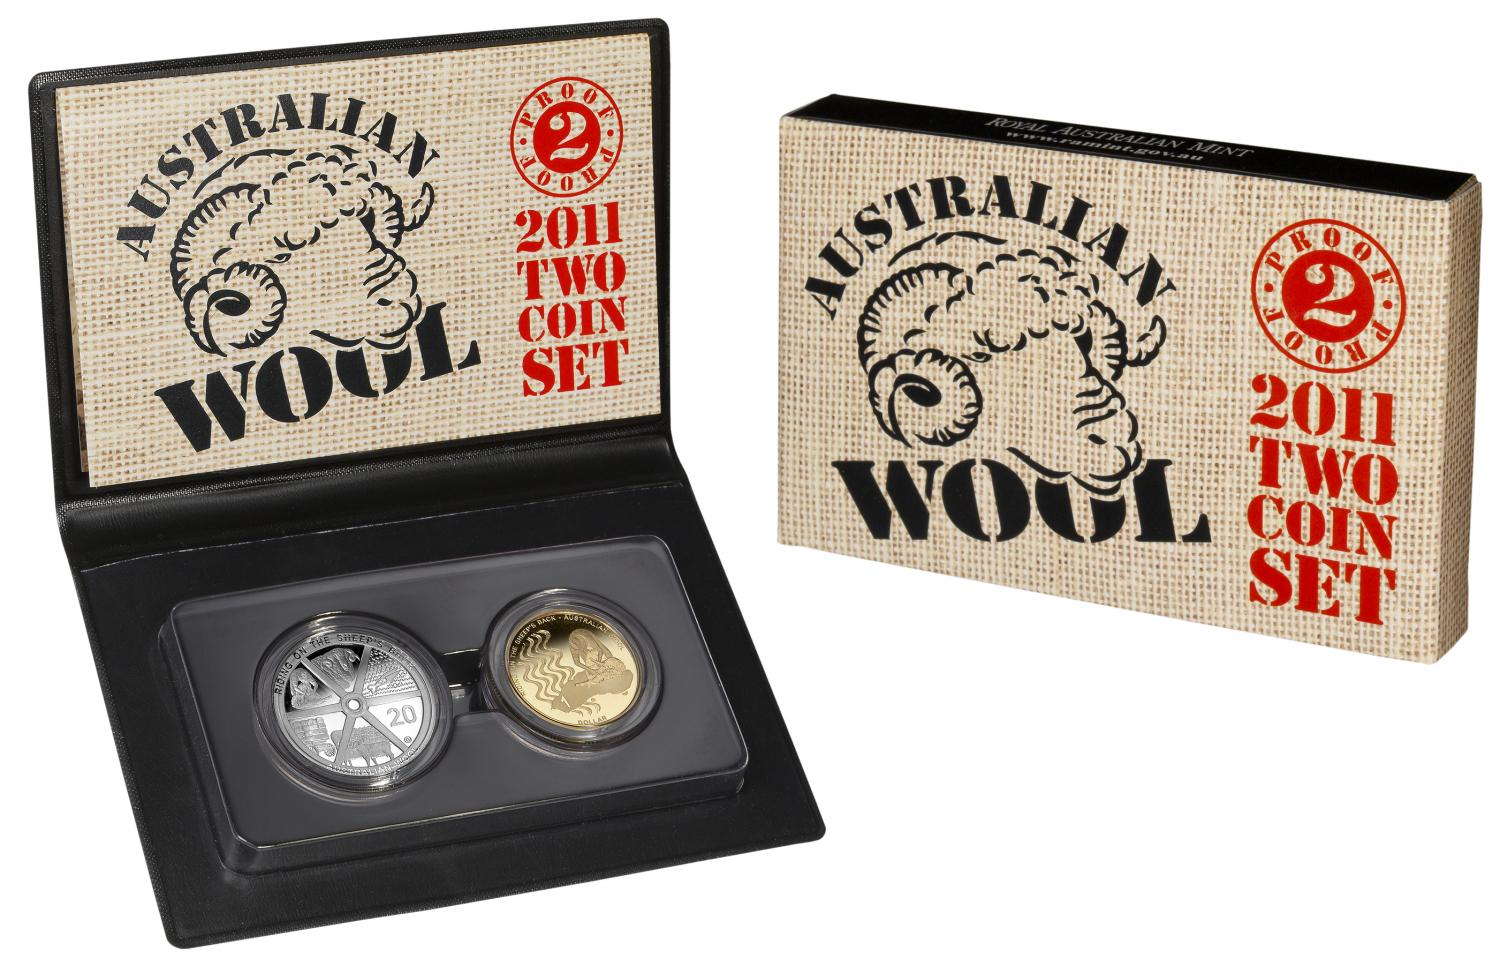 Thumbnail for 2011 Two Coin Proof Set - Australian Wool